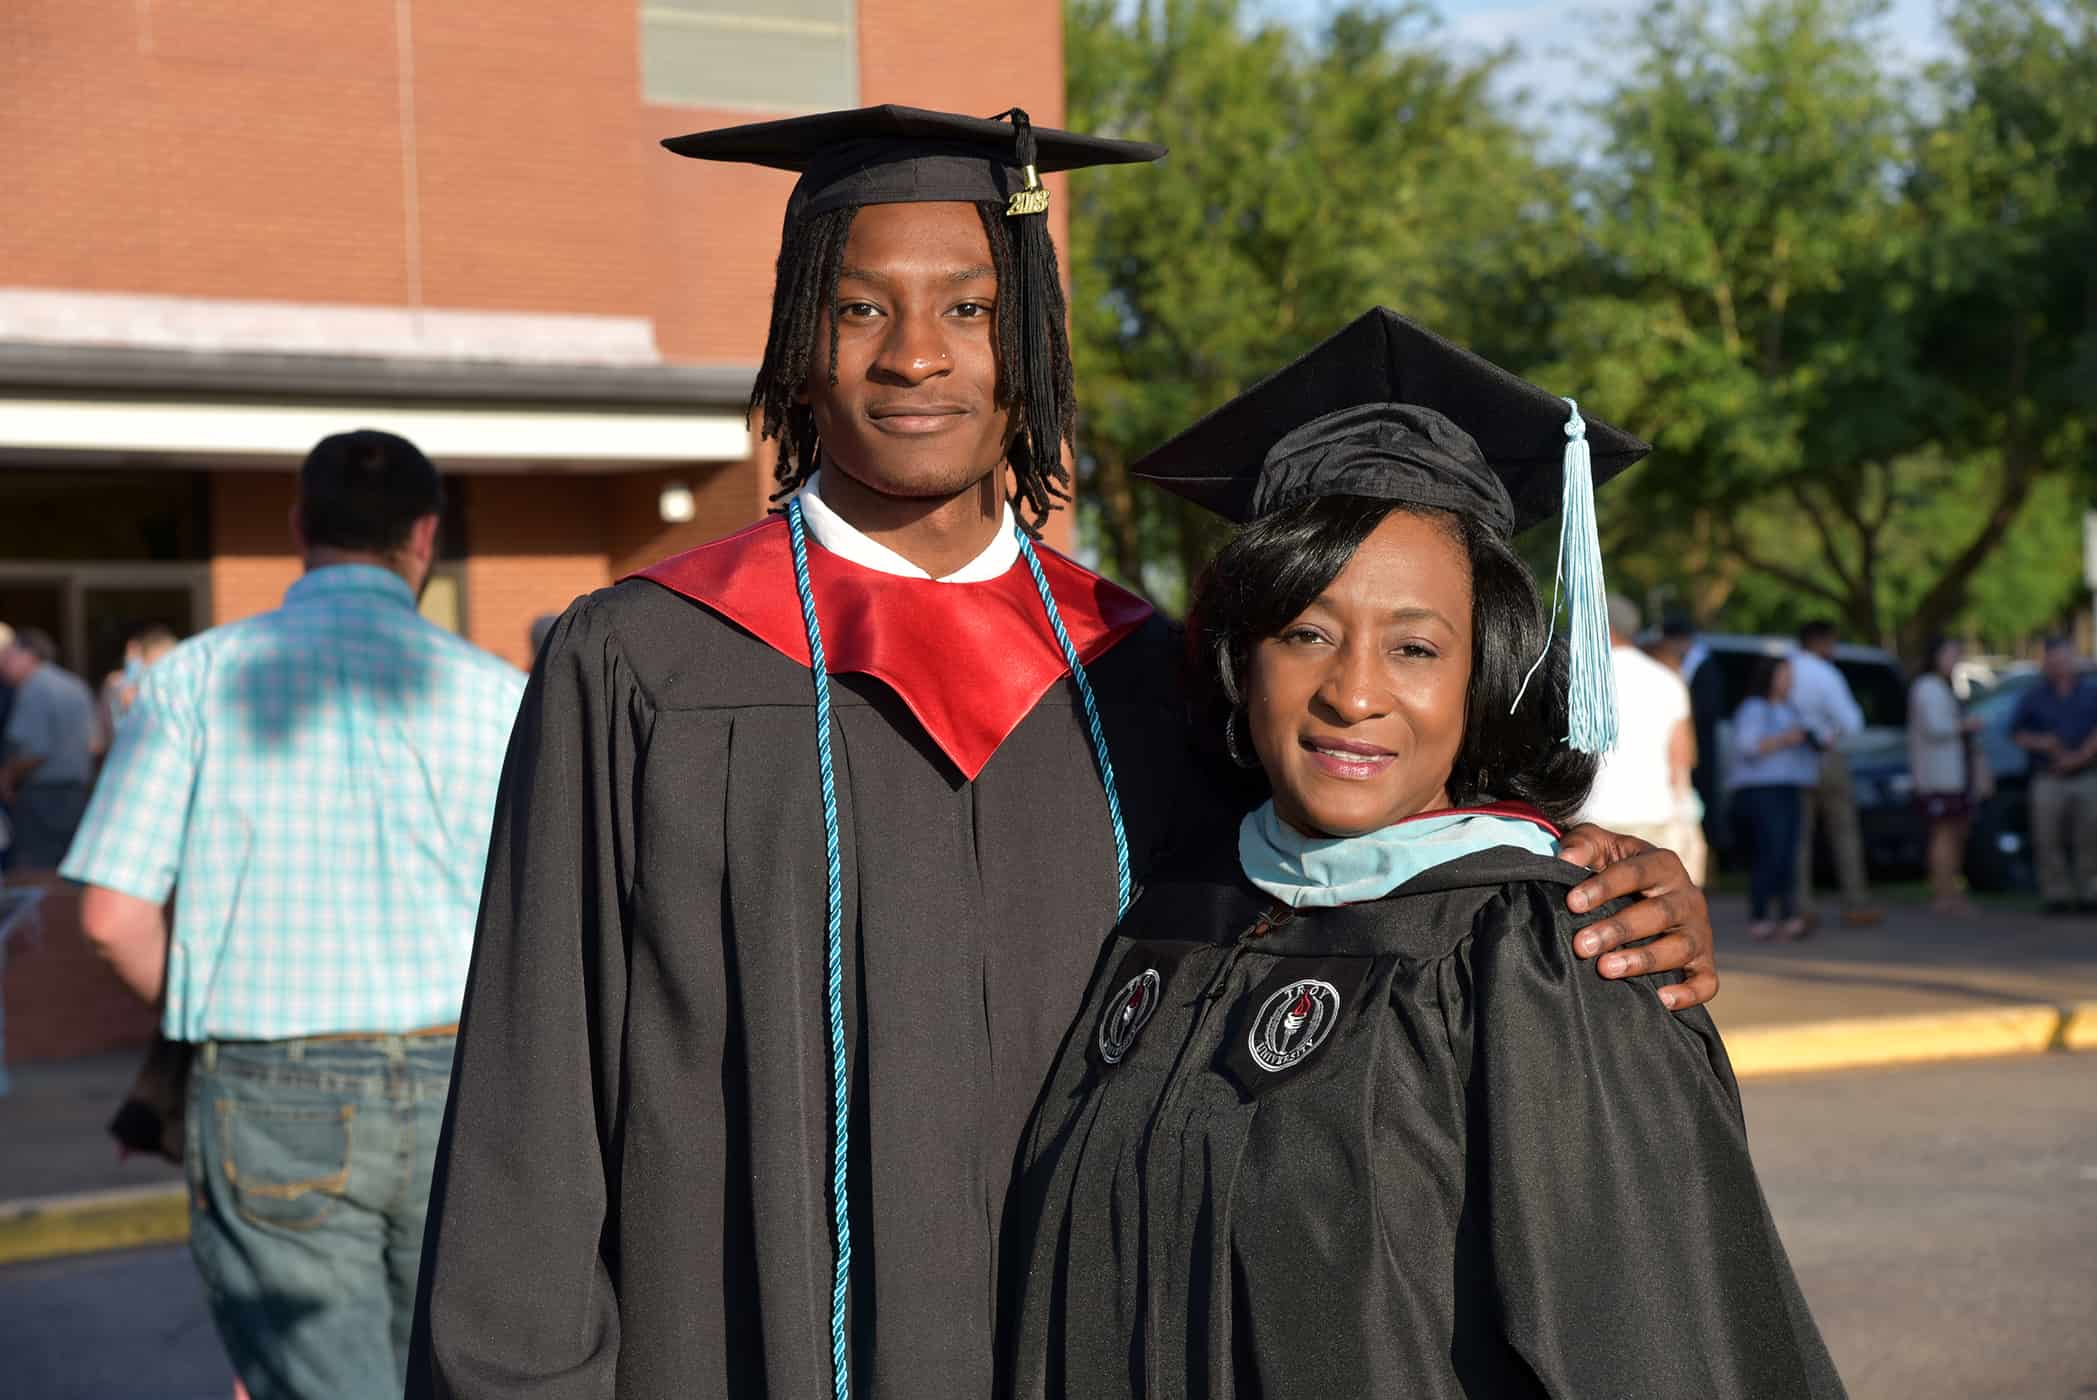 A male and female in black graduation cap and gowns stand together.